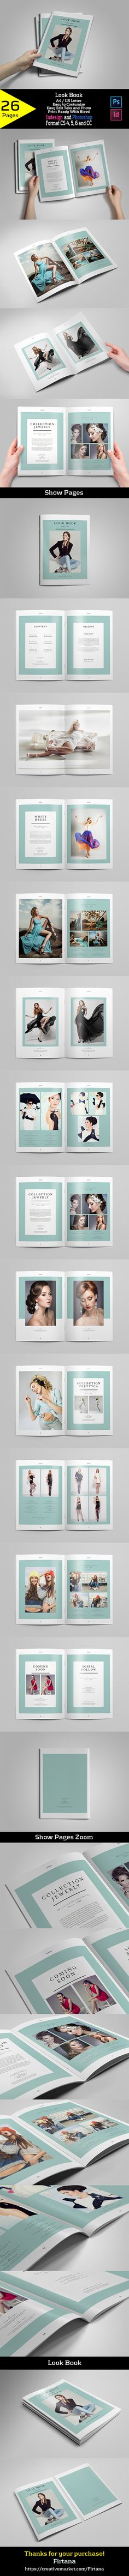 Fashion Lookbook on Behance